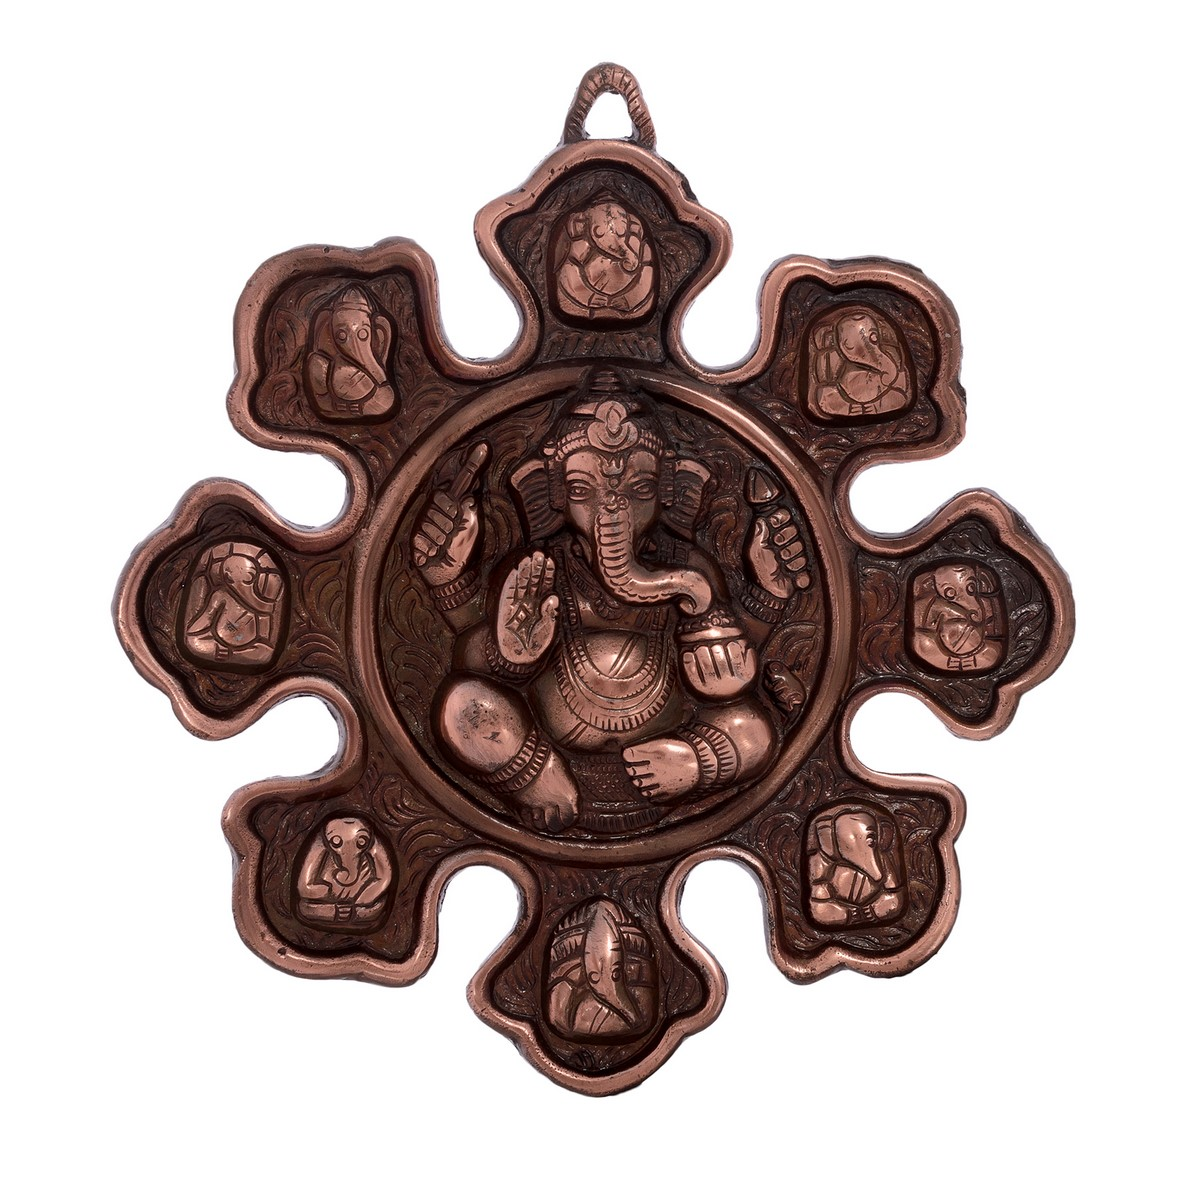 Metal Wall hanging with 9 variants of Lord Ganesha Indian Home Decor